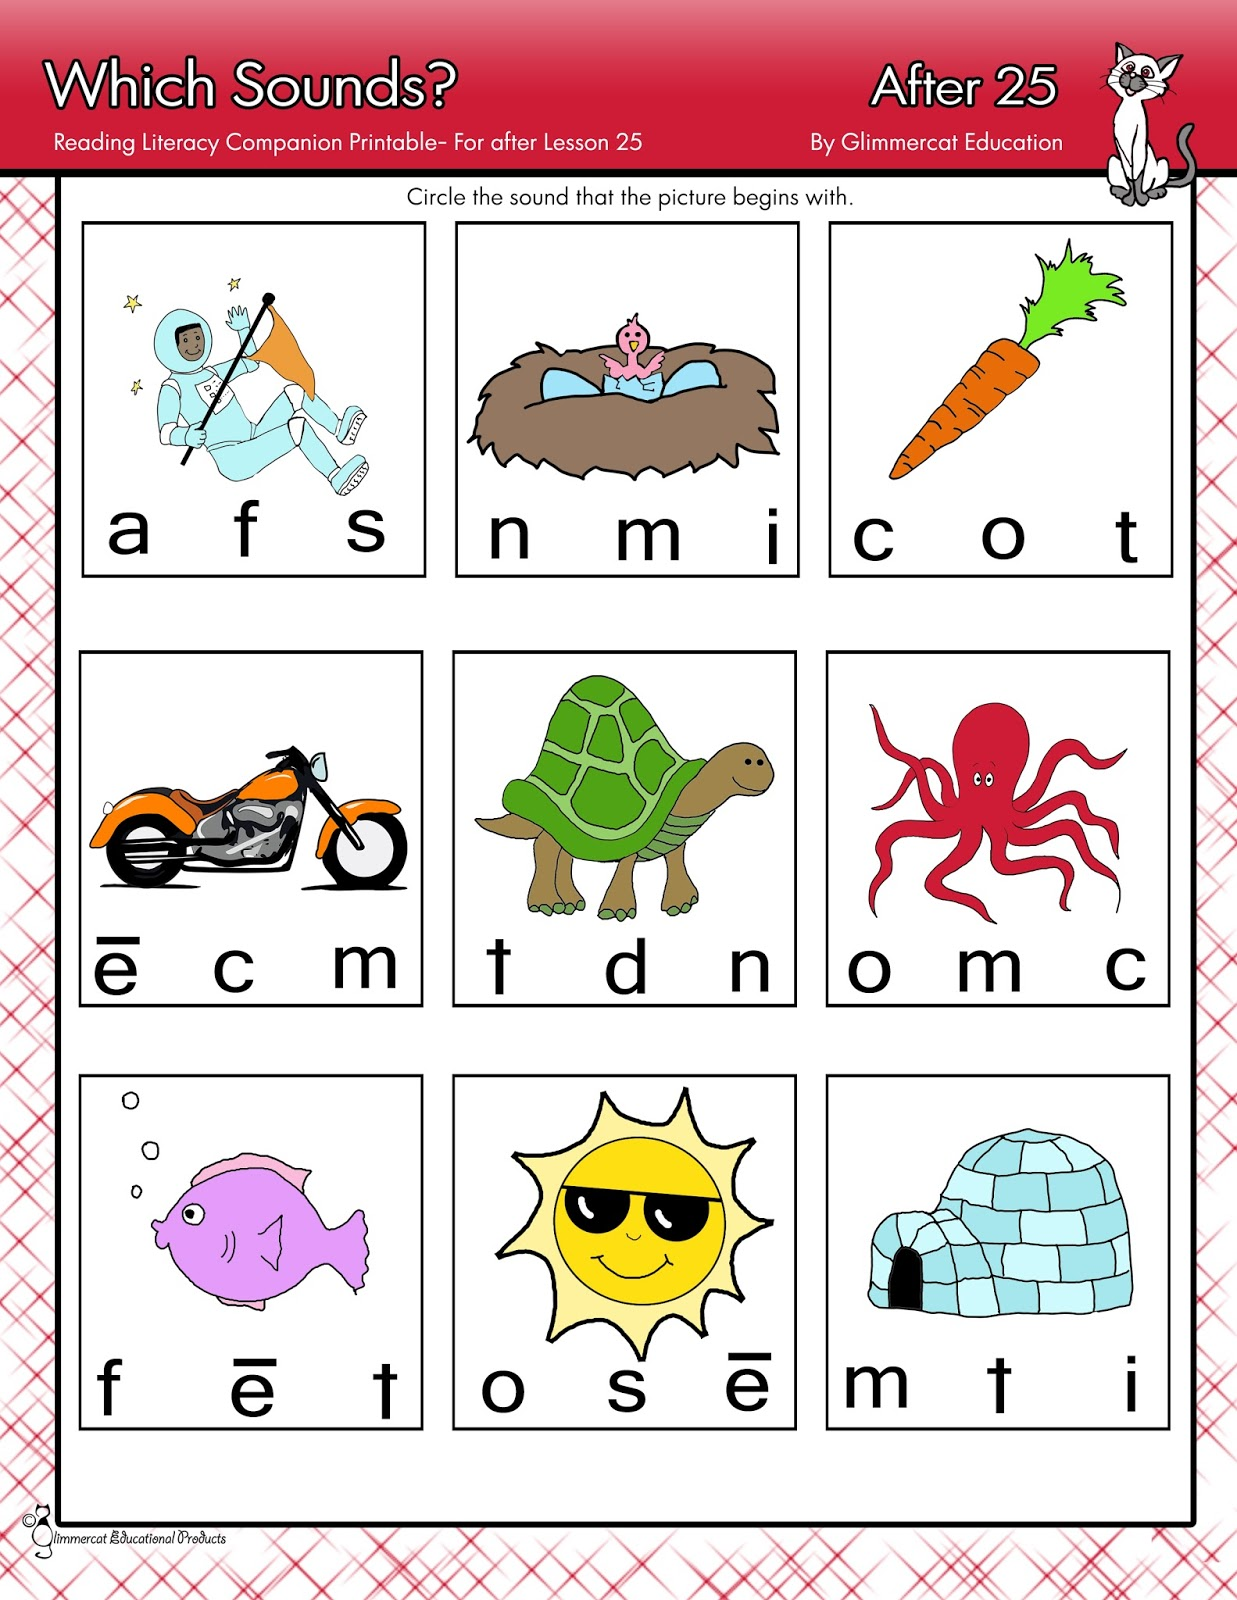 Worksheets Teach Your Child To Read In 100 Easy Lessons Worksheets glimmercat supplemental activities for teach your child to read in 100 easy lessons with my own kids mind i created some additional supplementa